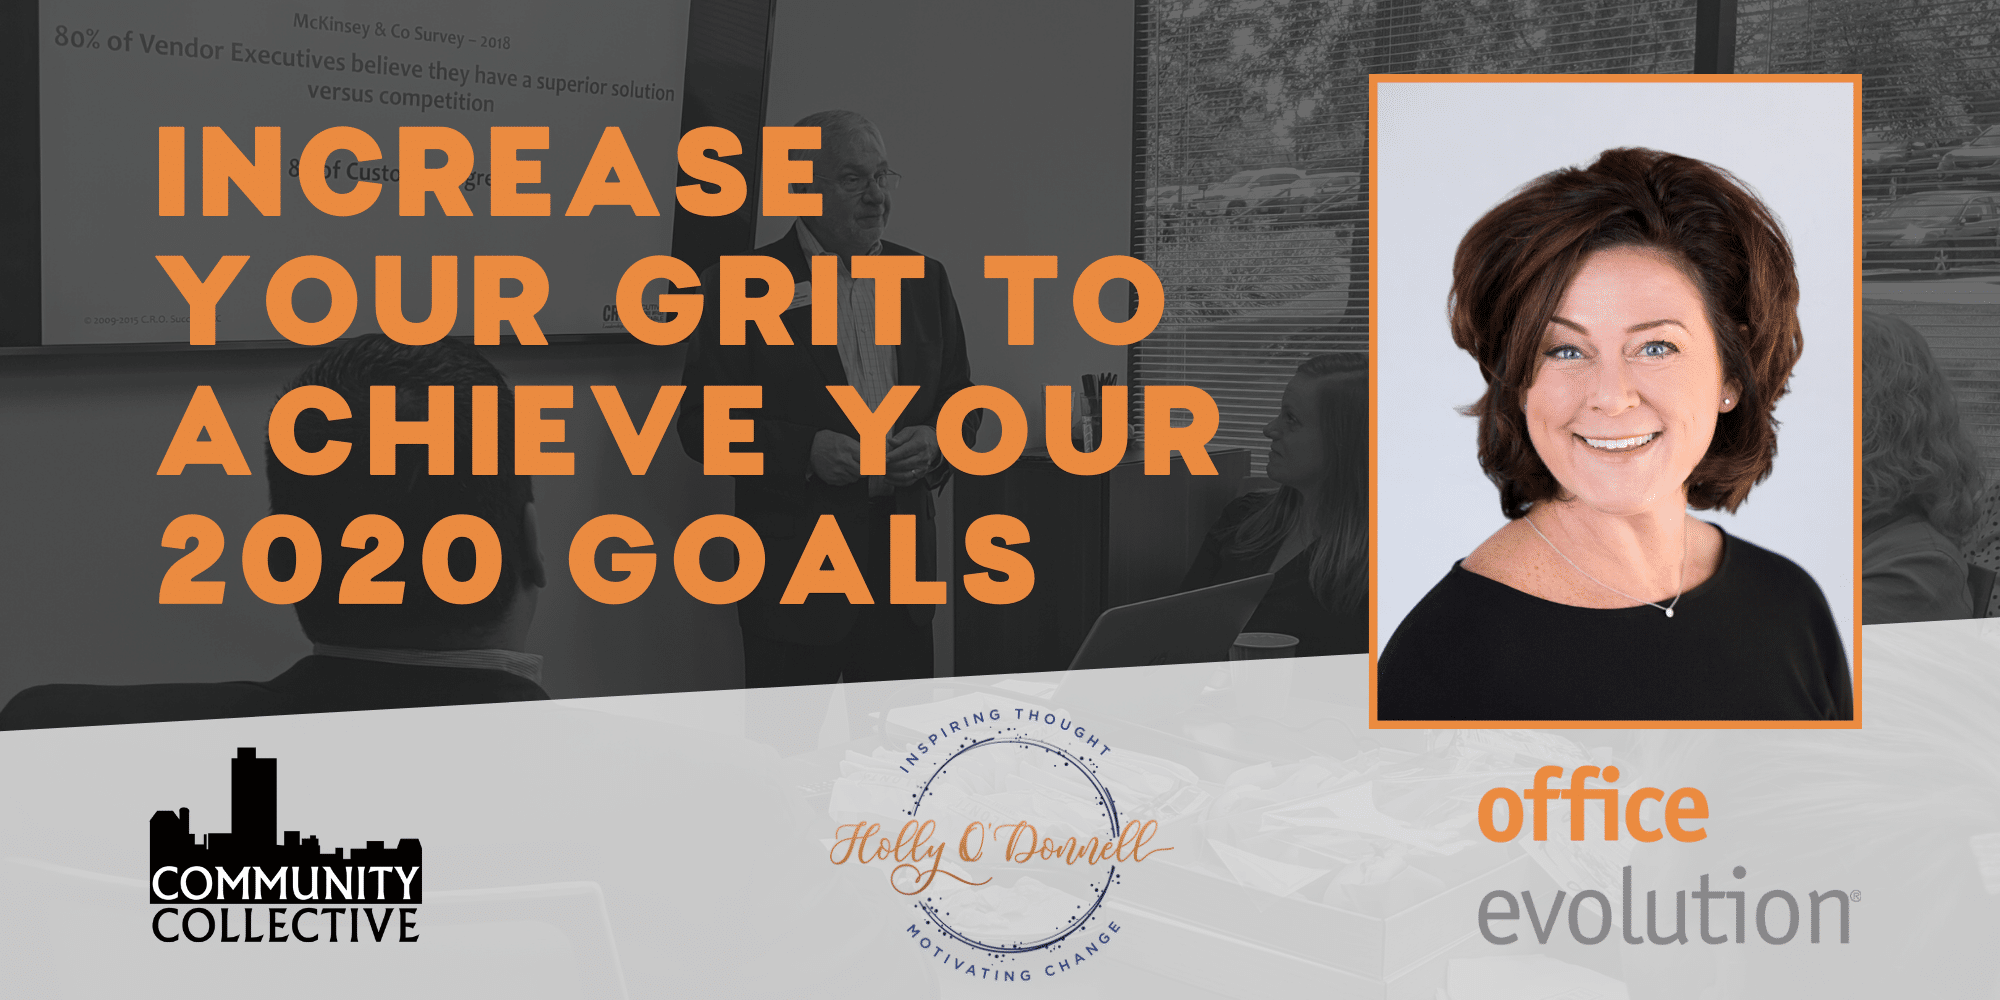 Lunch & Earn: Increase Your Grit to Achieve Your 2020 Goals